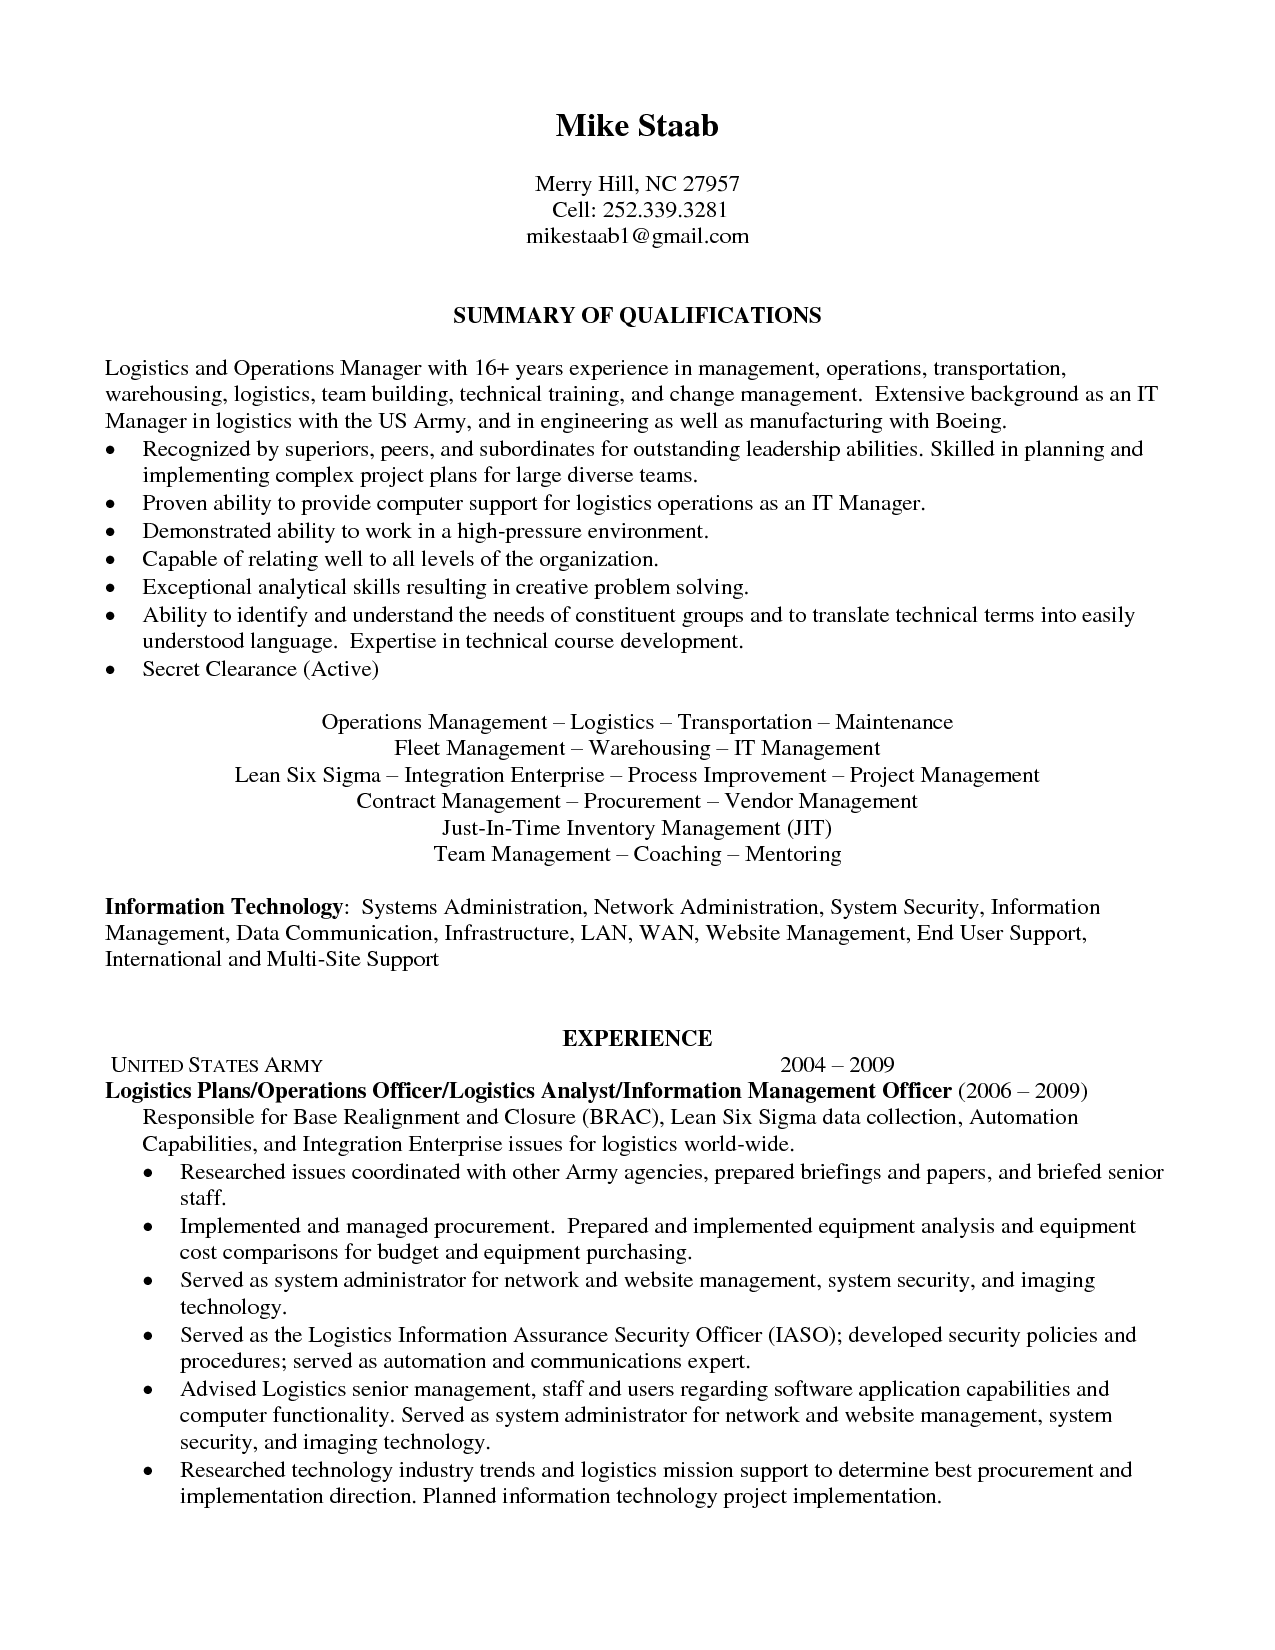 Operation Manager Resume Senior Logistic Management Resume  Operations Logistics Manager